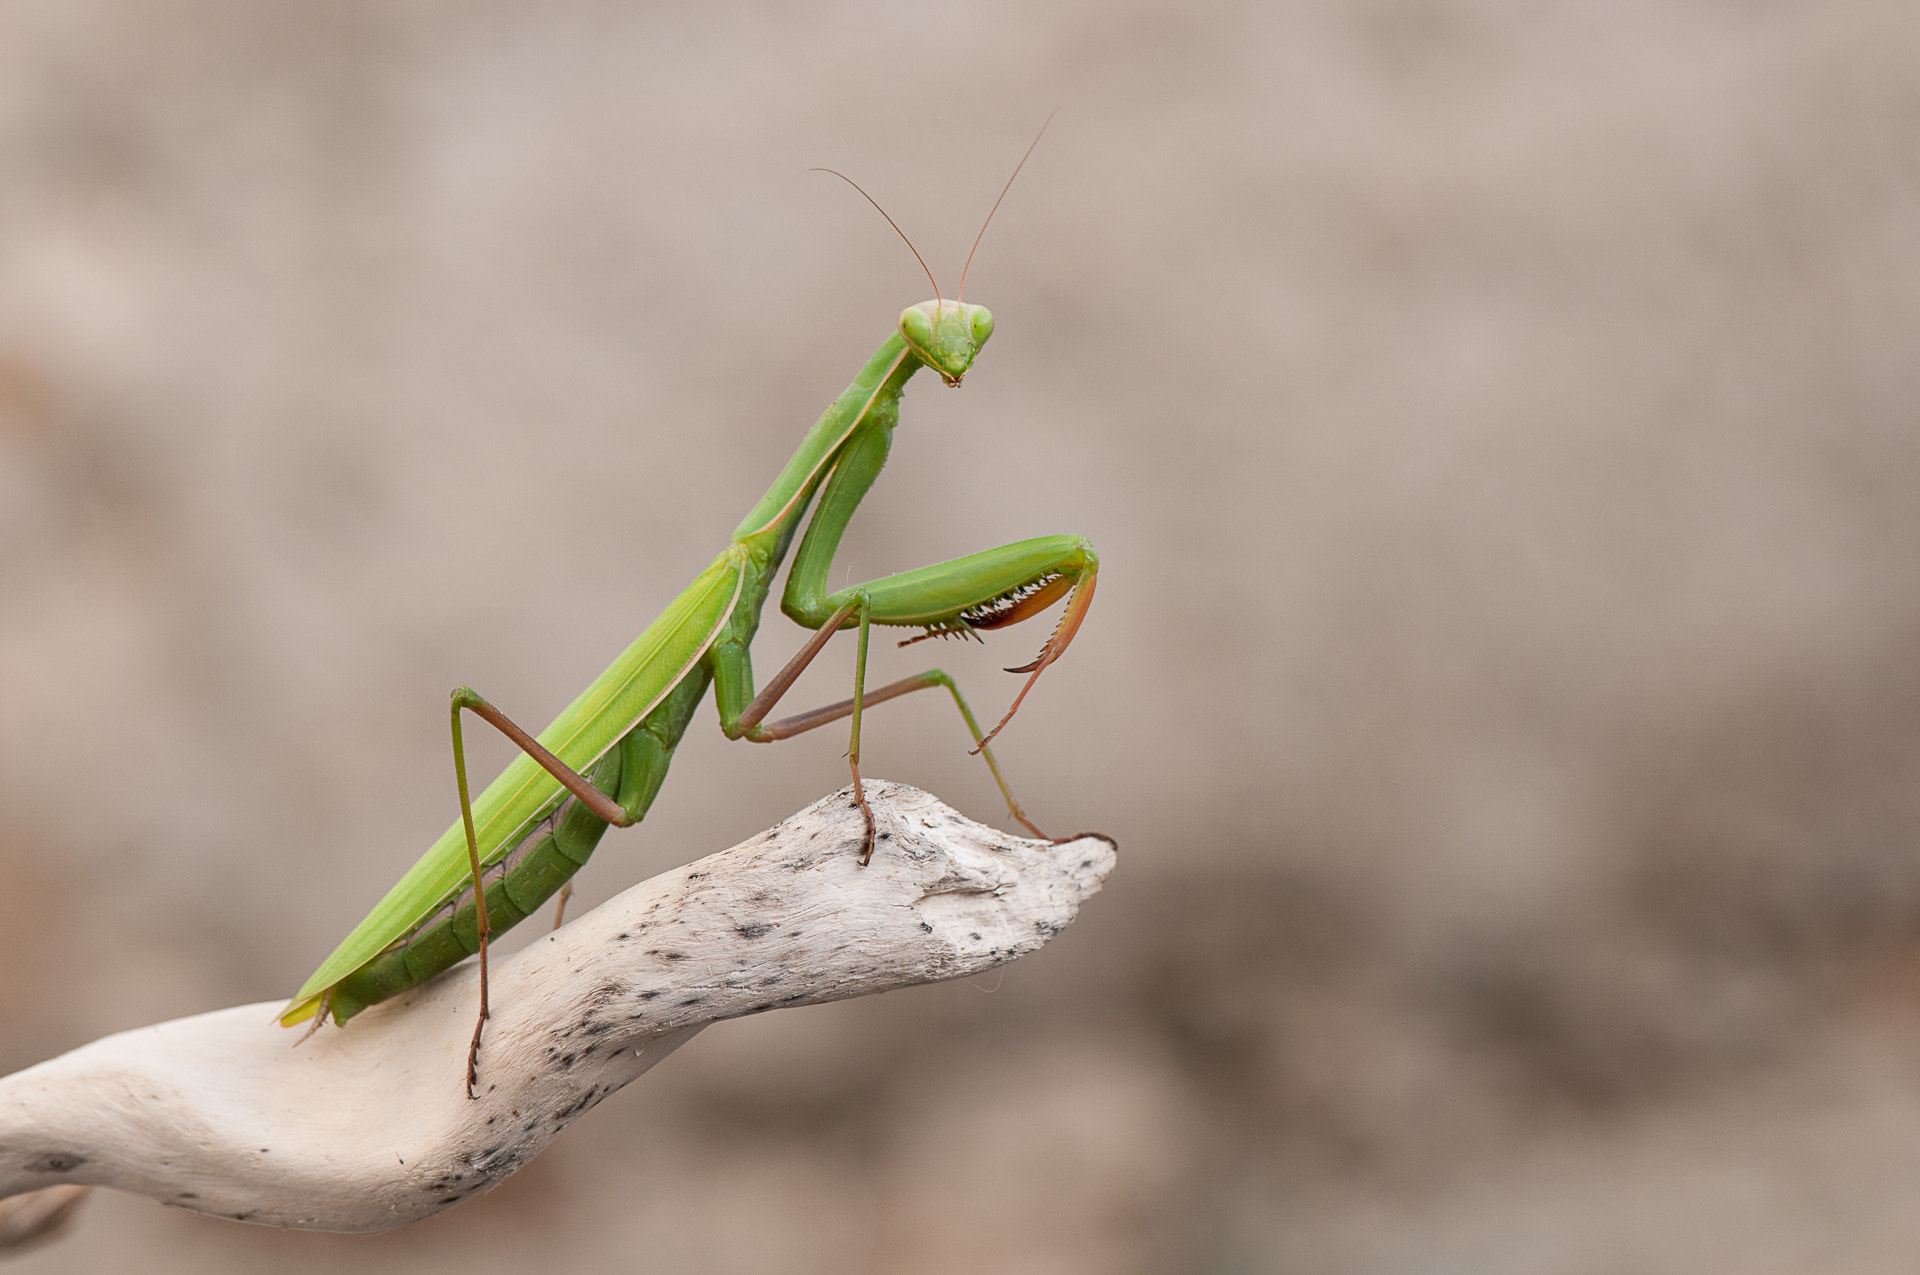 Photograph Praying Mantis by Ineke Nientied on 500px